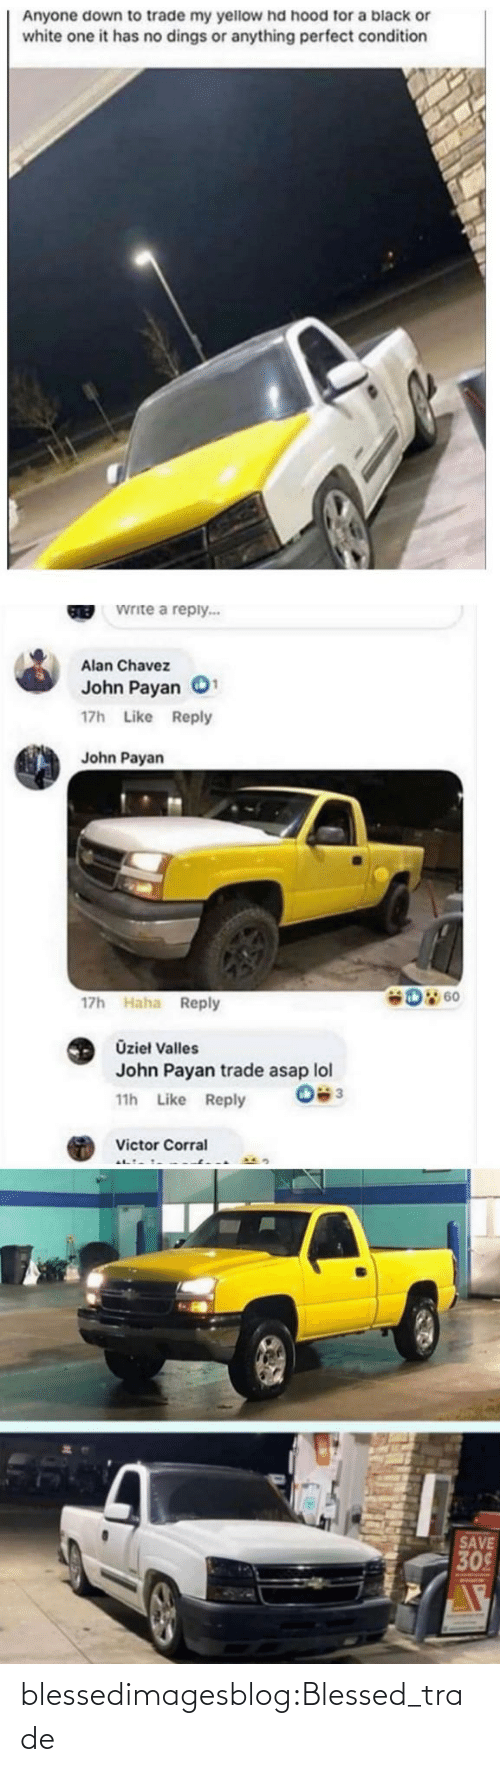 Trade: Anyone down to trade my yellow hd hood for a black or  white one it has no dings or anything perfect condition  Write a reply...  GREB  Alan Chavez  John Payan  17h Like Reply  John Payan  D 60  17h Haha Reply  Üzieł Valles  John Payan trade asap lol  11h Like Reply  Victor Corral  SAVE  309 blessedimagesblog:Blessed_trade